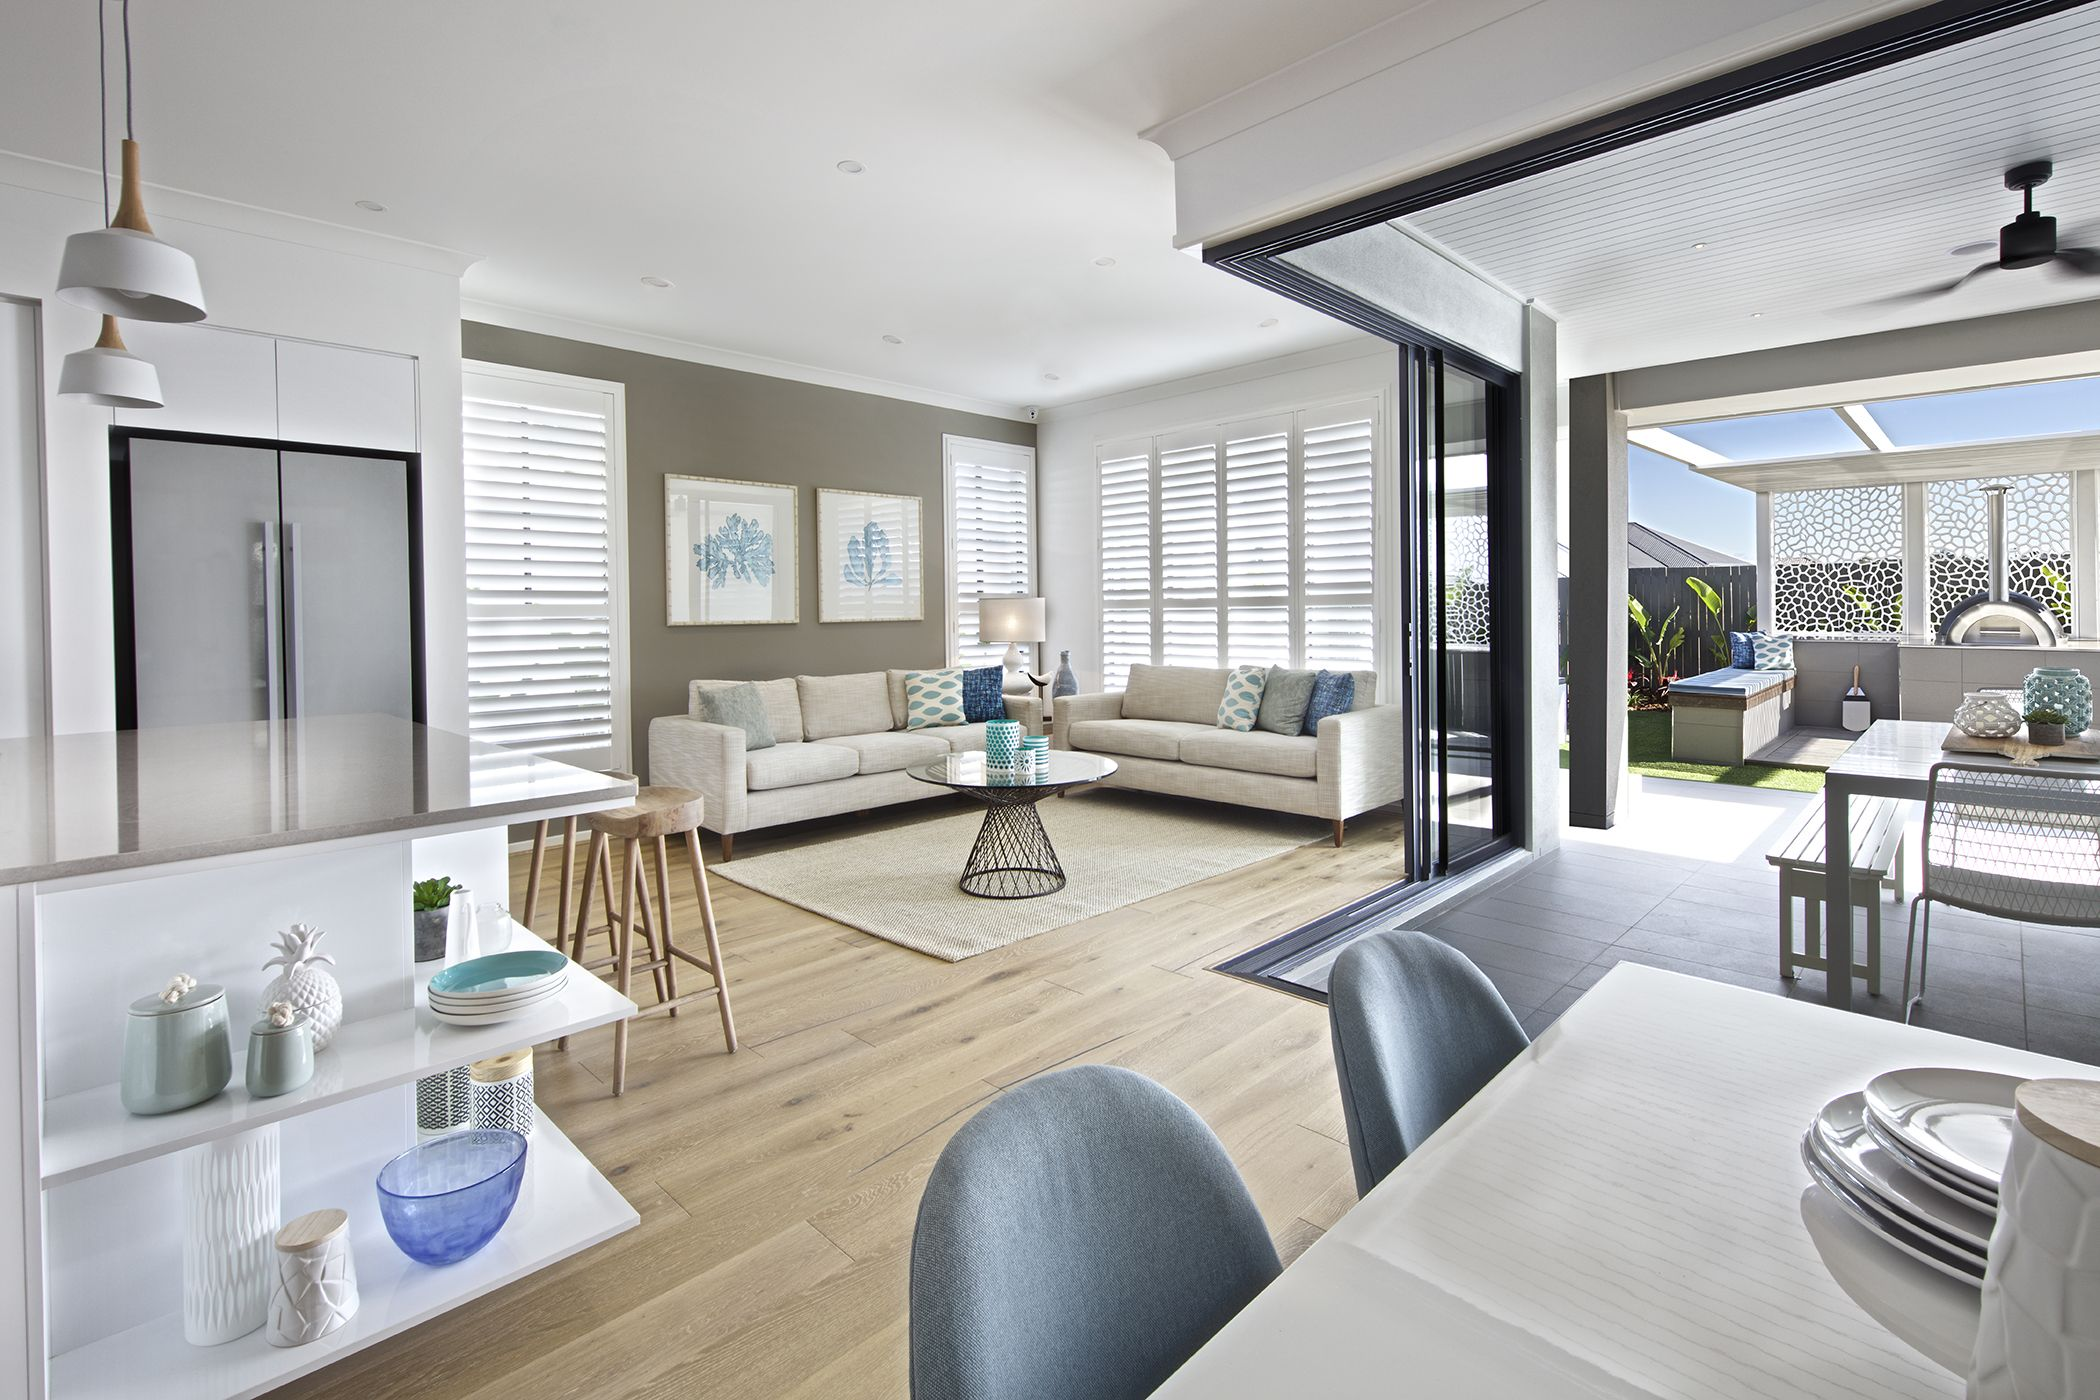 Clarendon Homes\' Newhaven 27 - Family and alfresco | Our new home ...